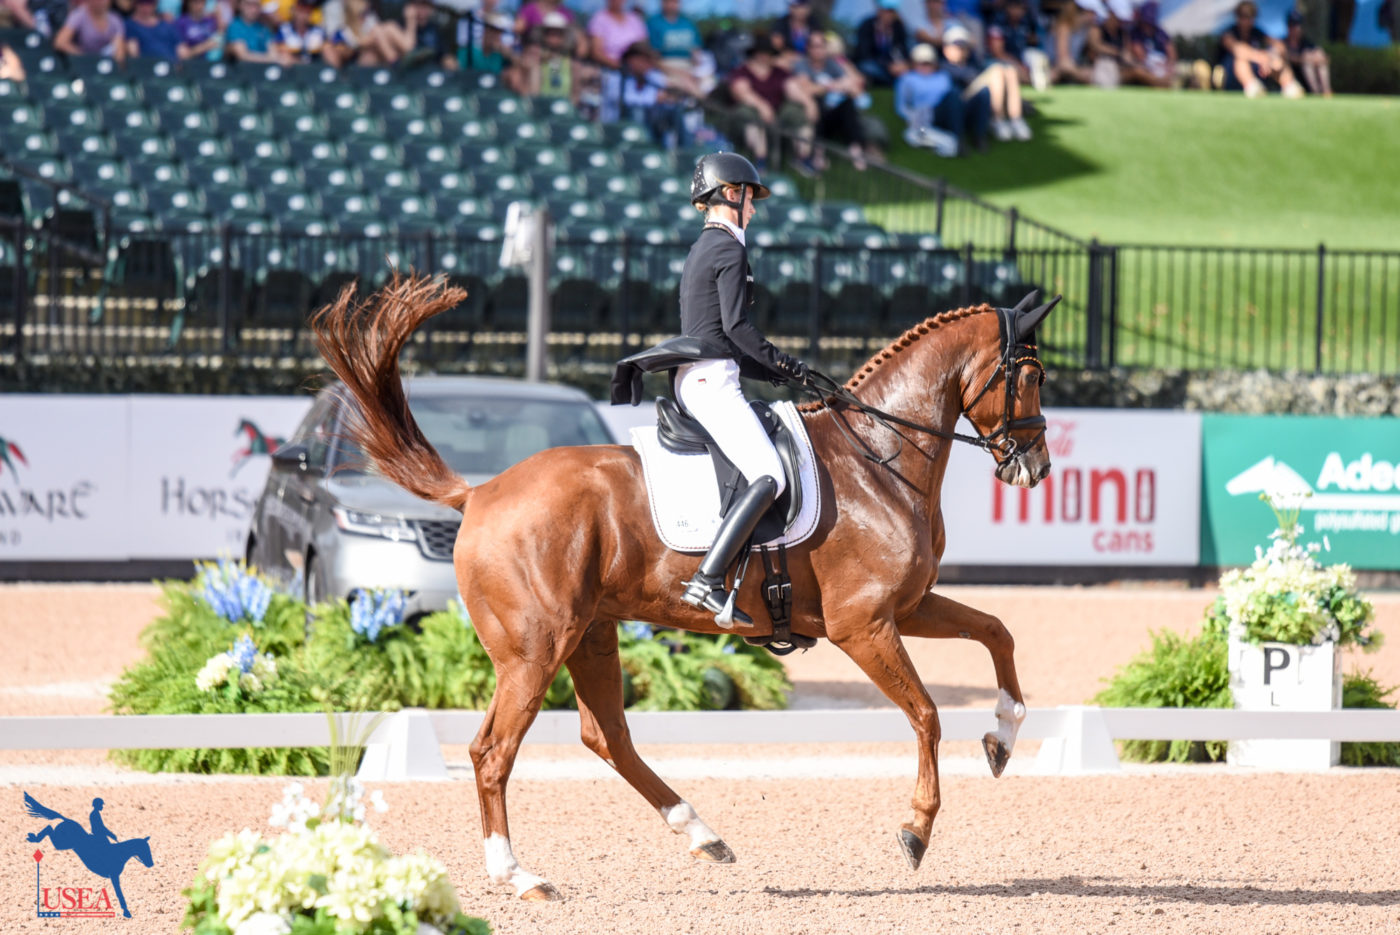 35th - Sandra Auffarth and Viamant du Matz (GER)